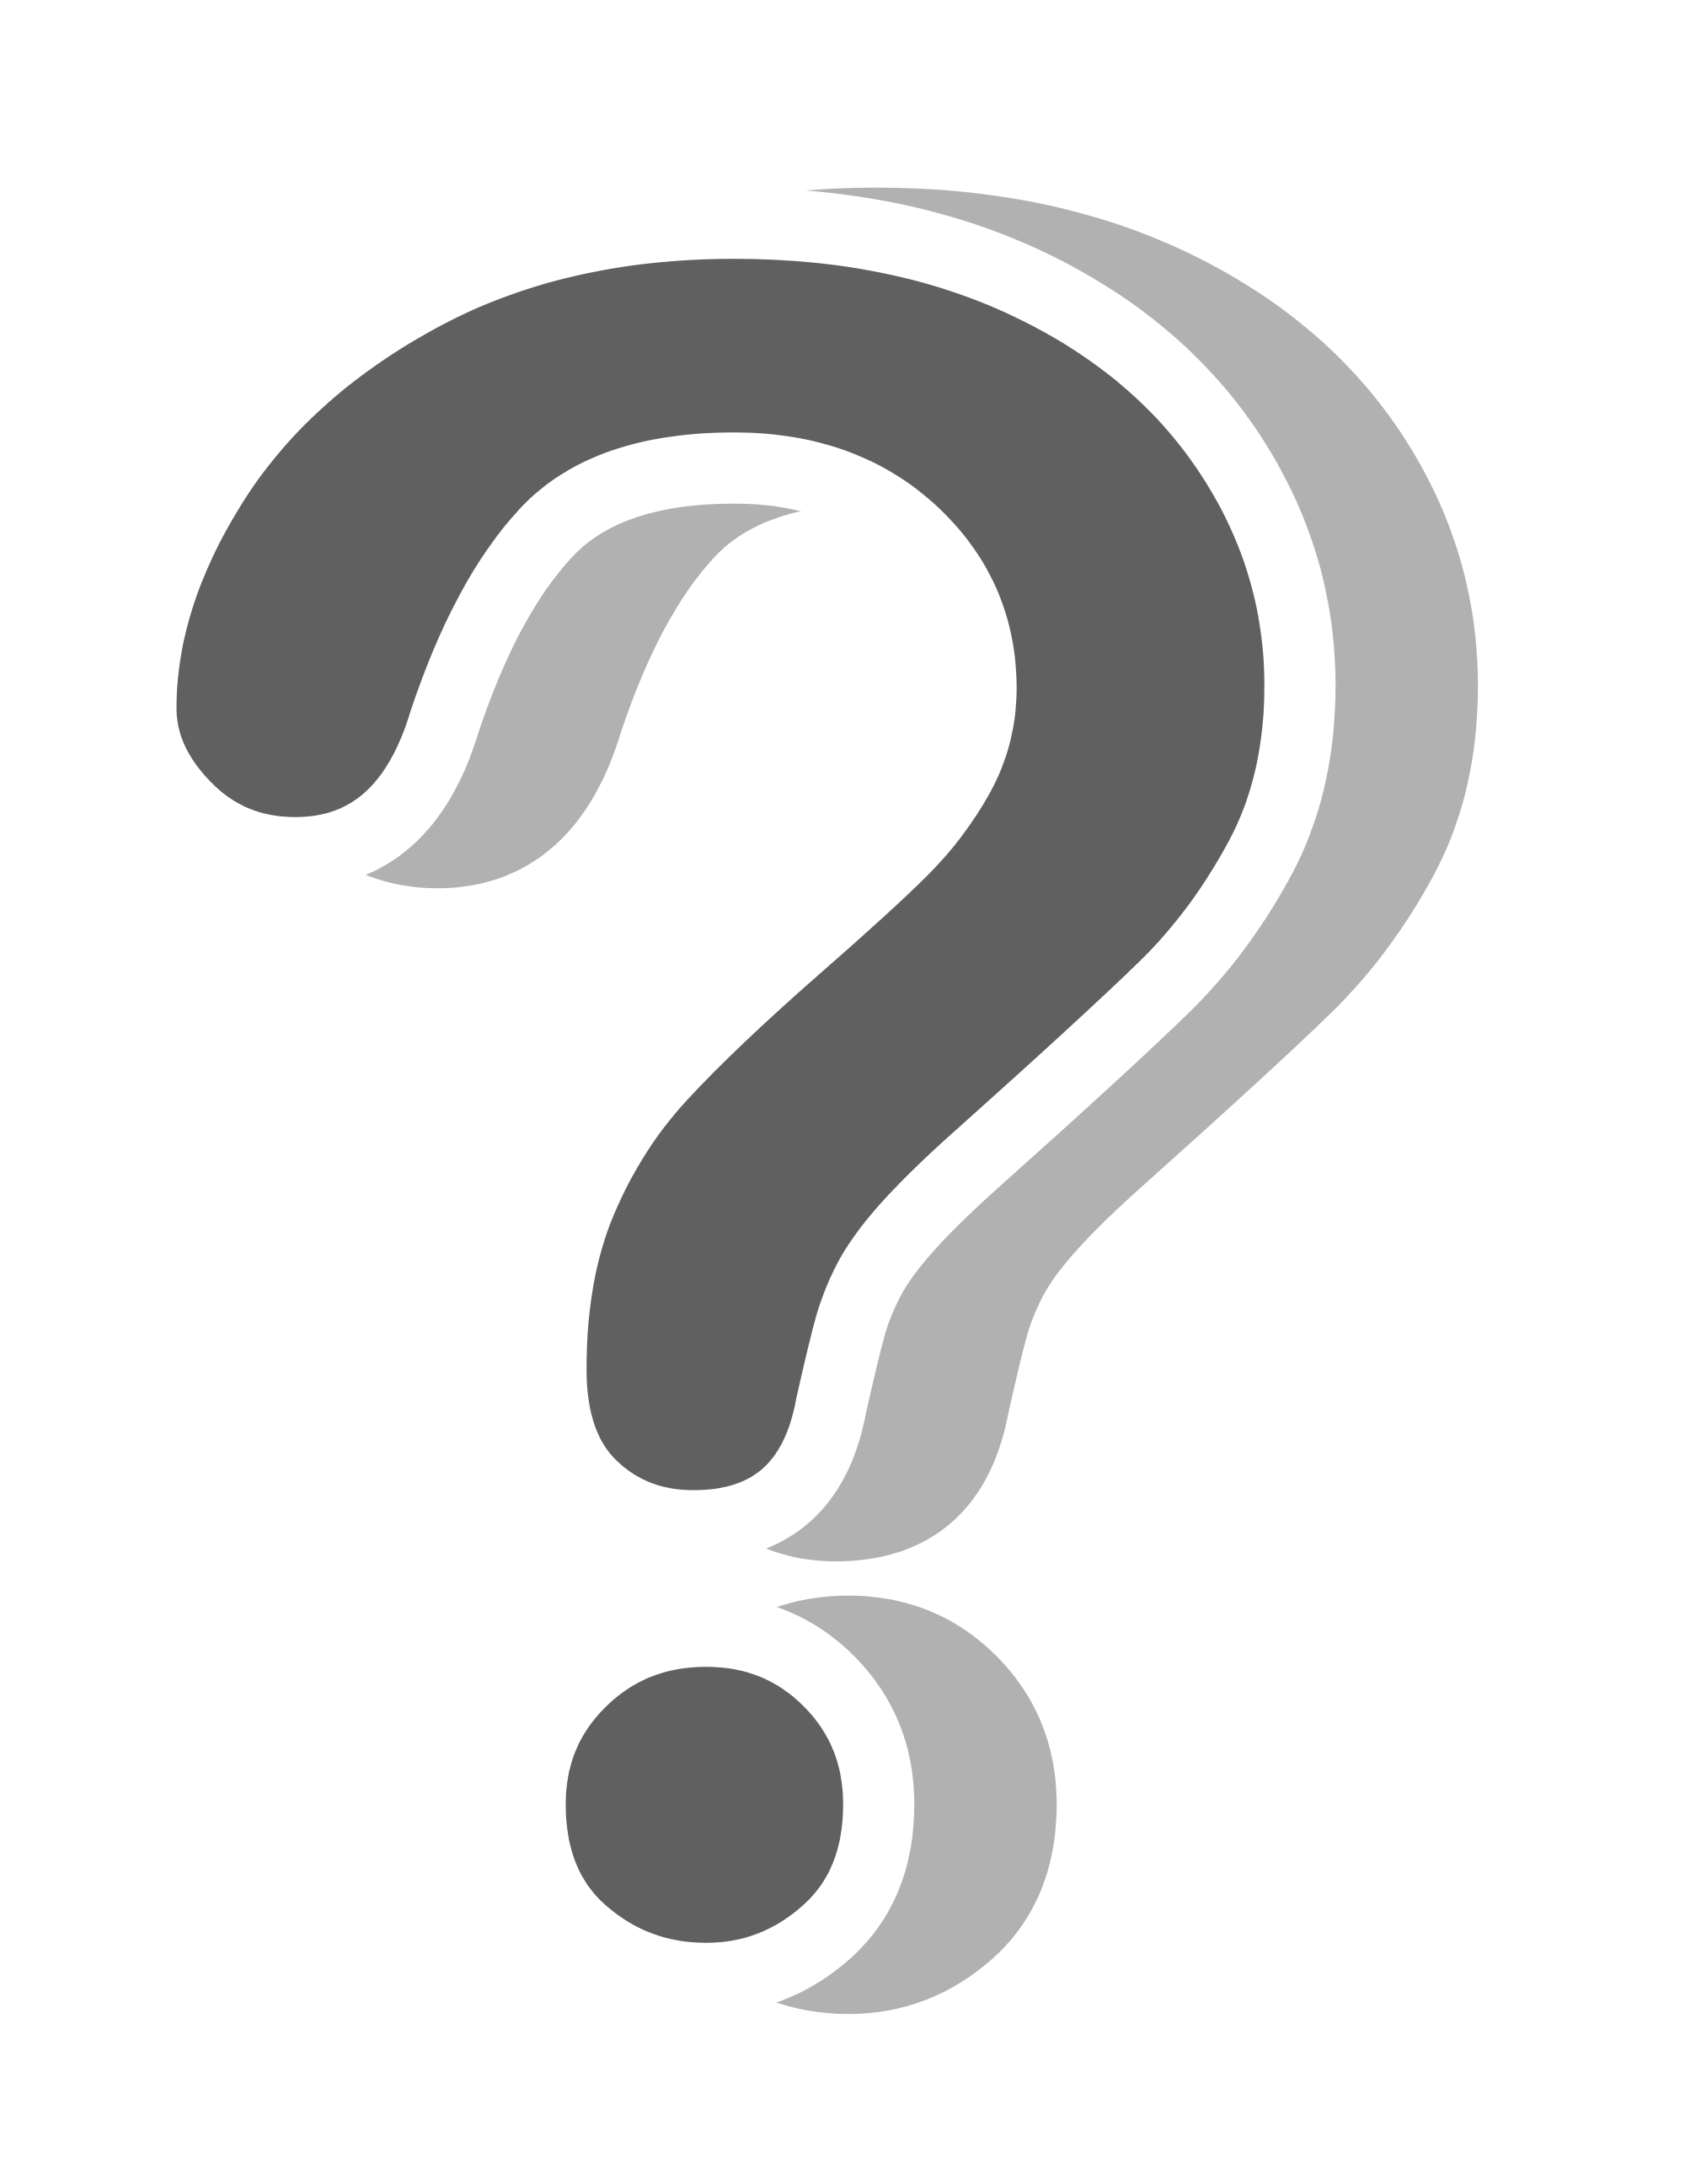 Question Mark Sticker Transparent Png Stickpng